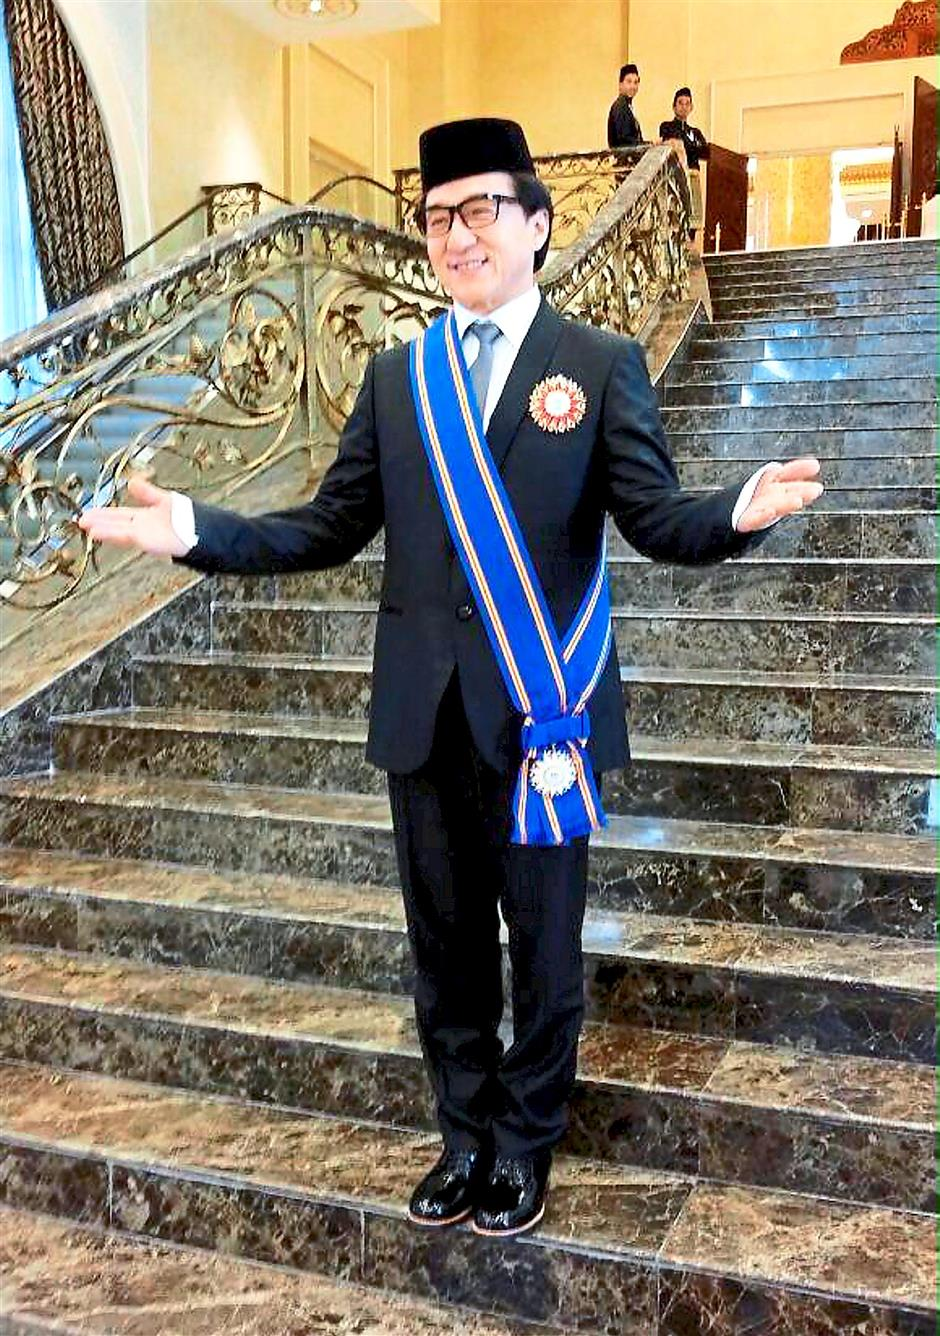 It's no stunt – HK superstar is now Datuk Jackie Chan | The